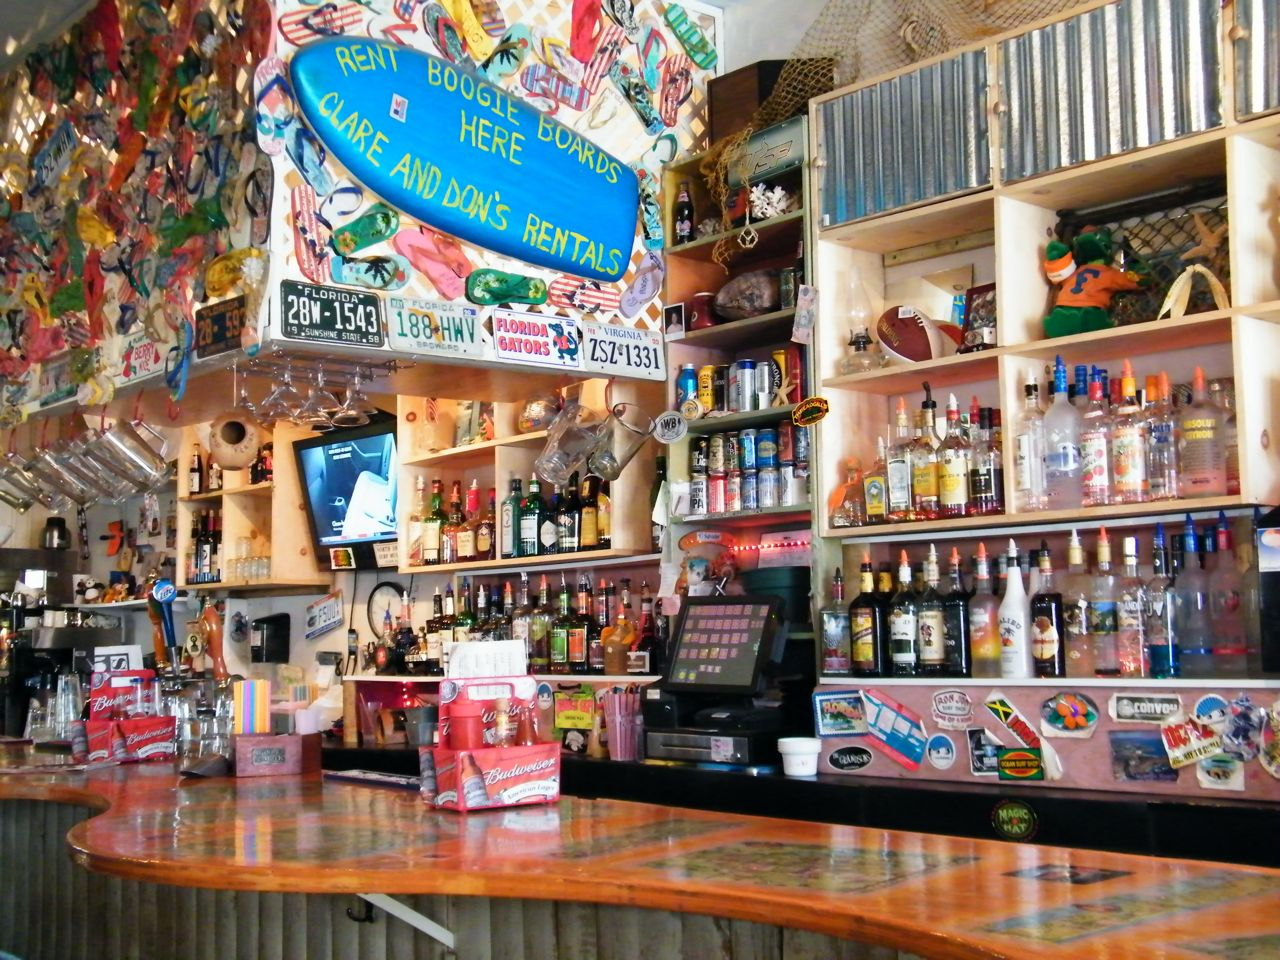 Clare and Don's Beach Shack: Good Food, Gators and Going ...